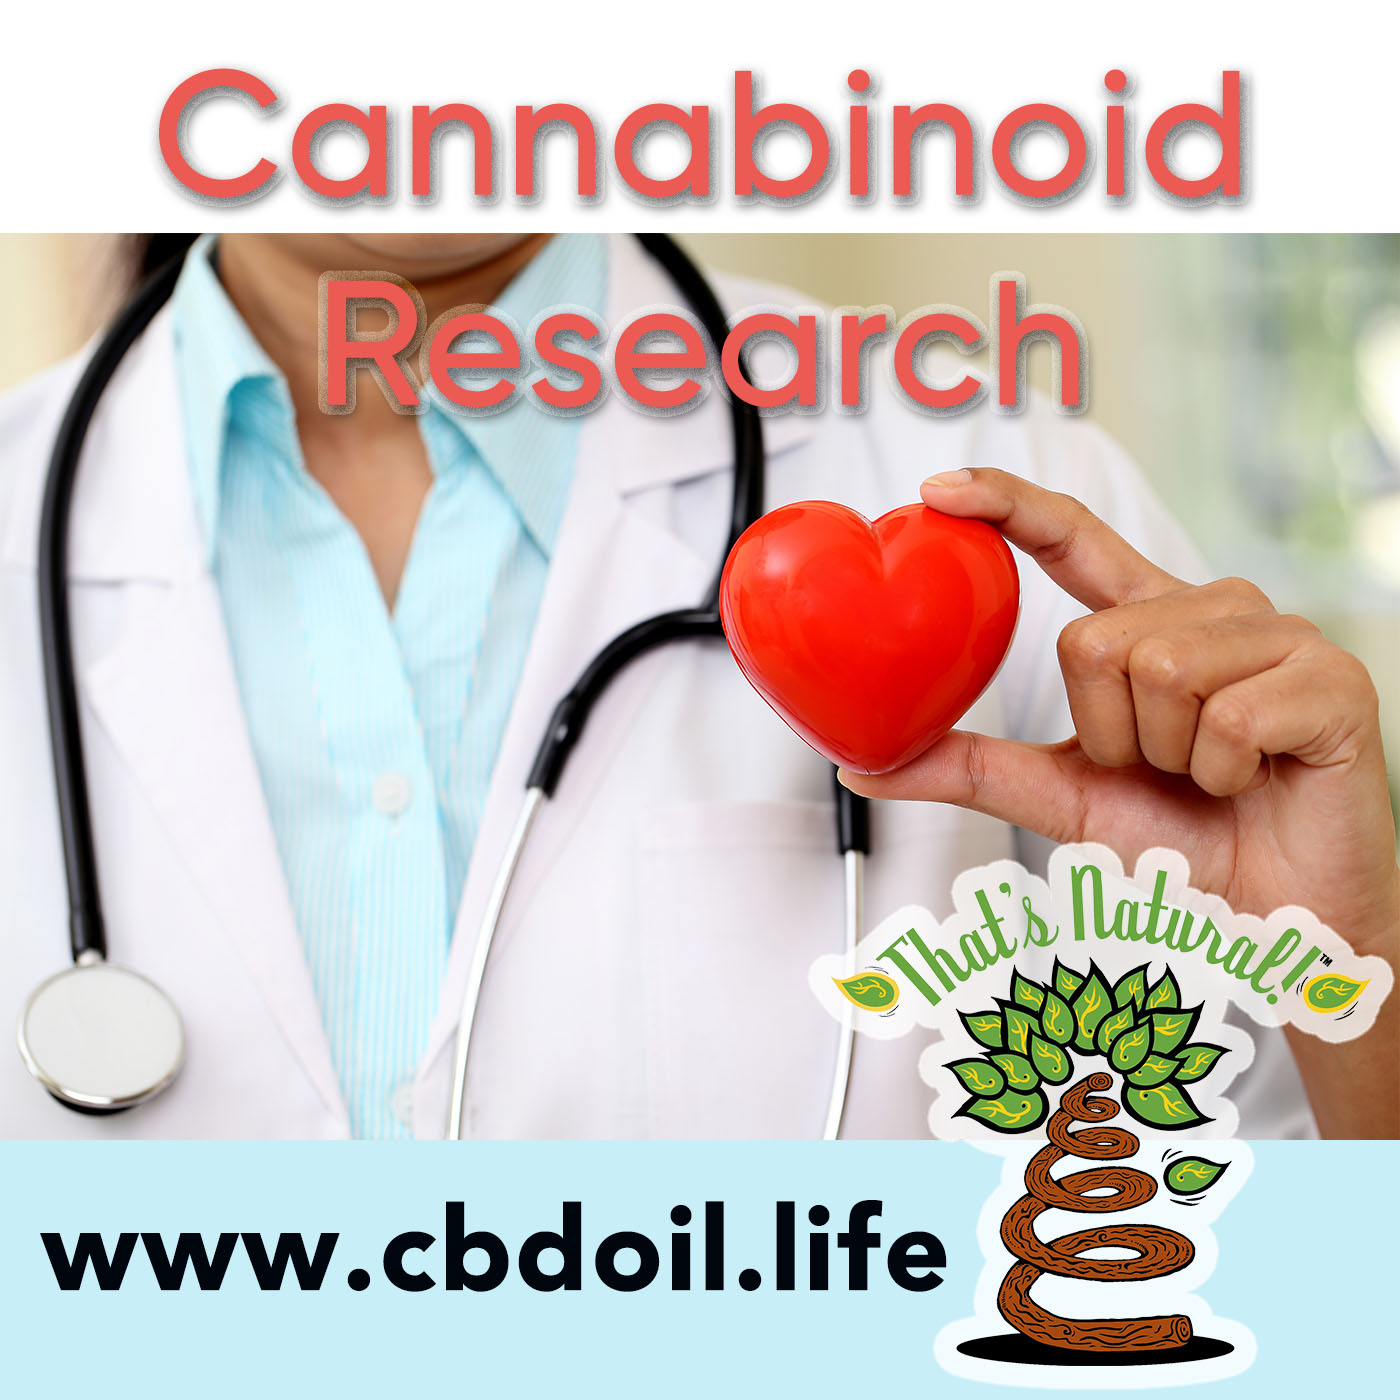 Cannabinoid Research - That's Natural Full Spectrum CBD-Rich Oil at www.cbdoil.life